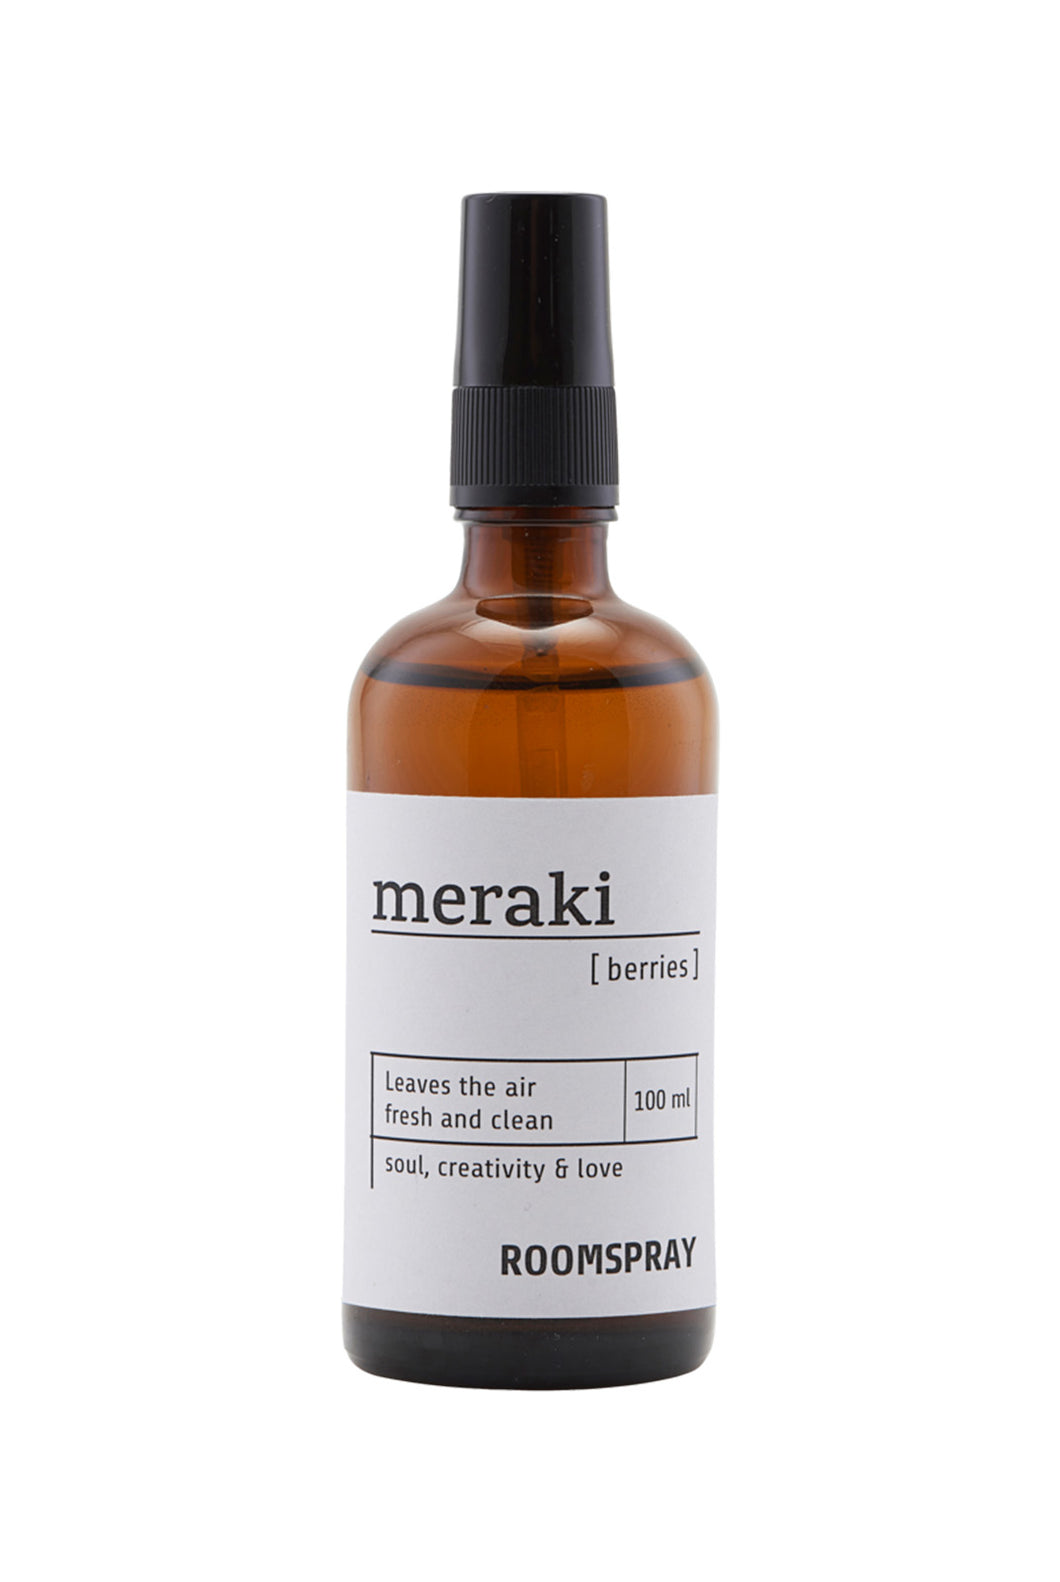 Meraki - Roomspray - 100ml - Berries